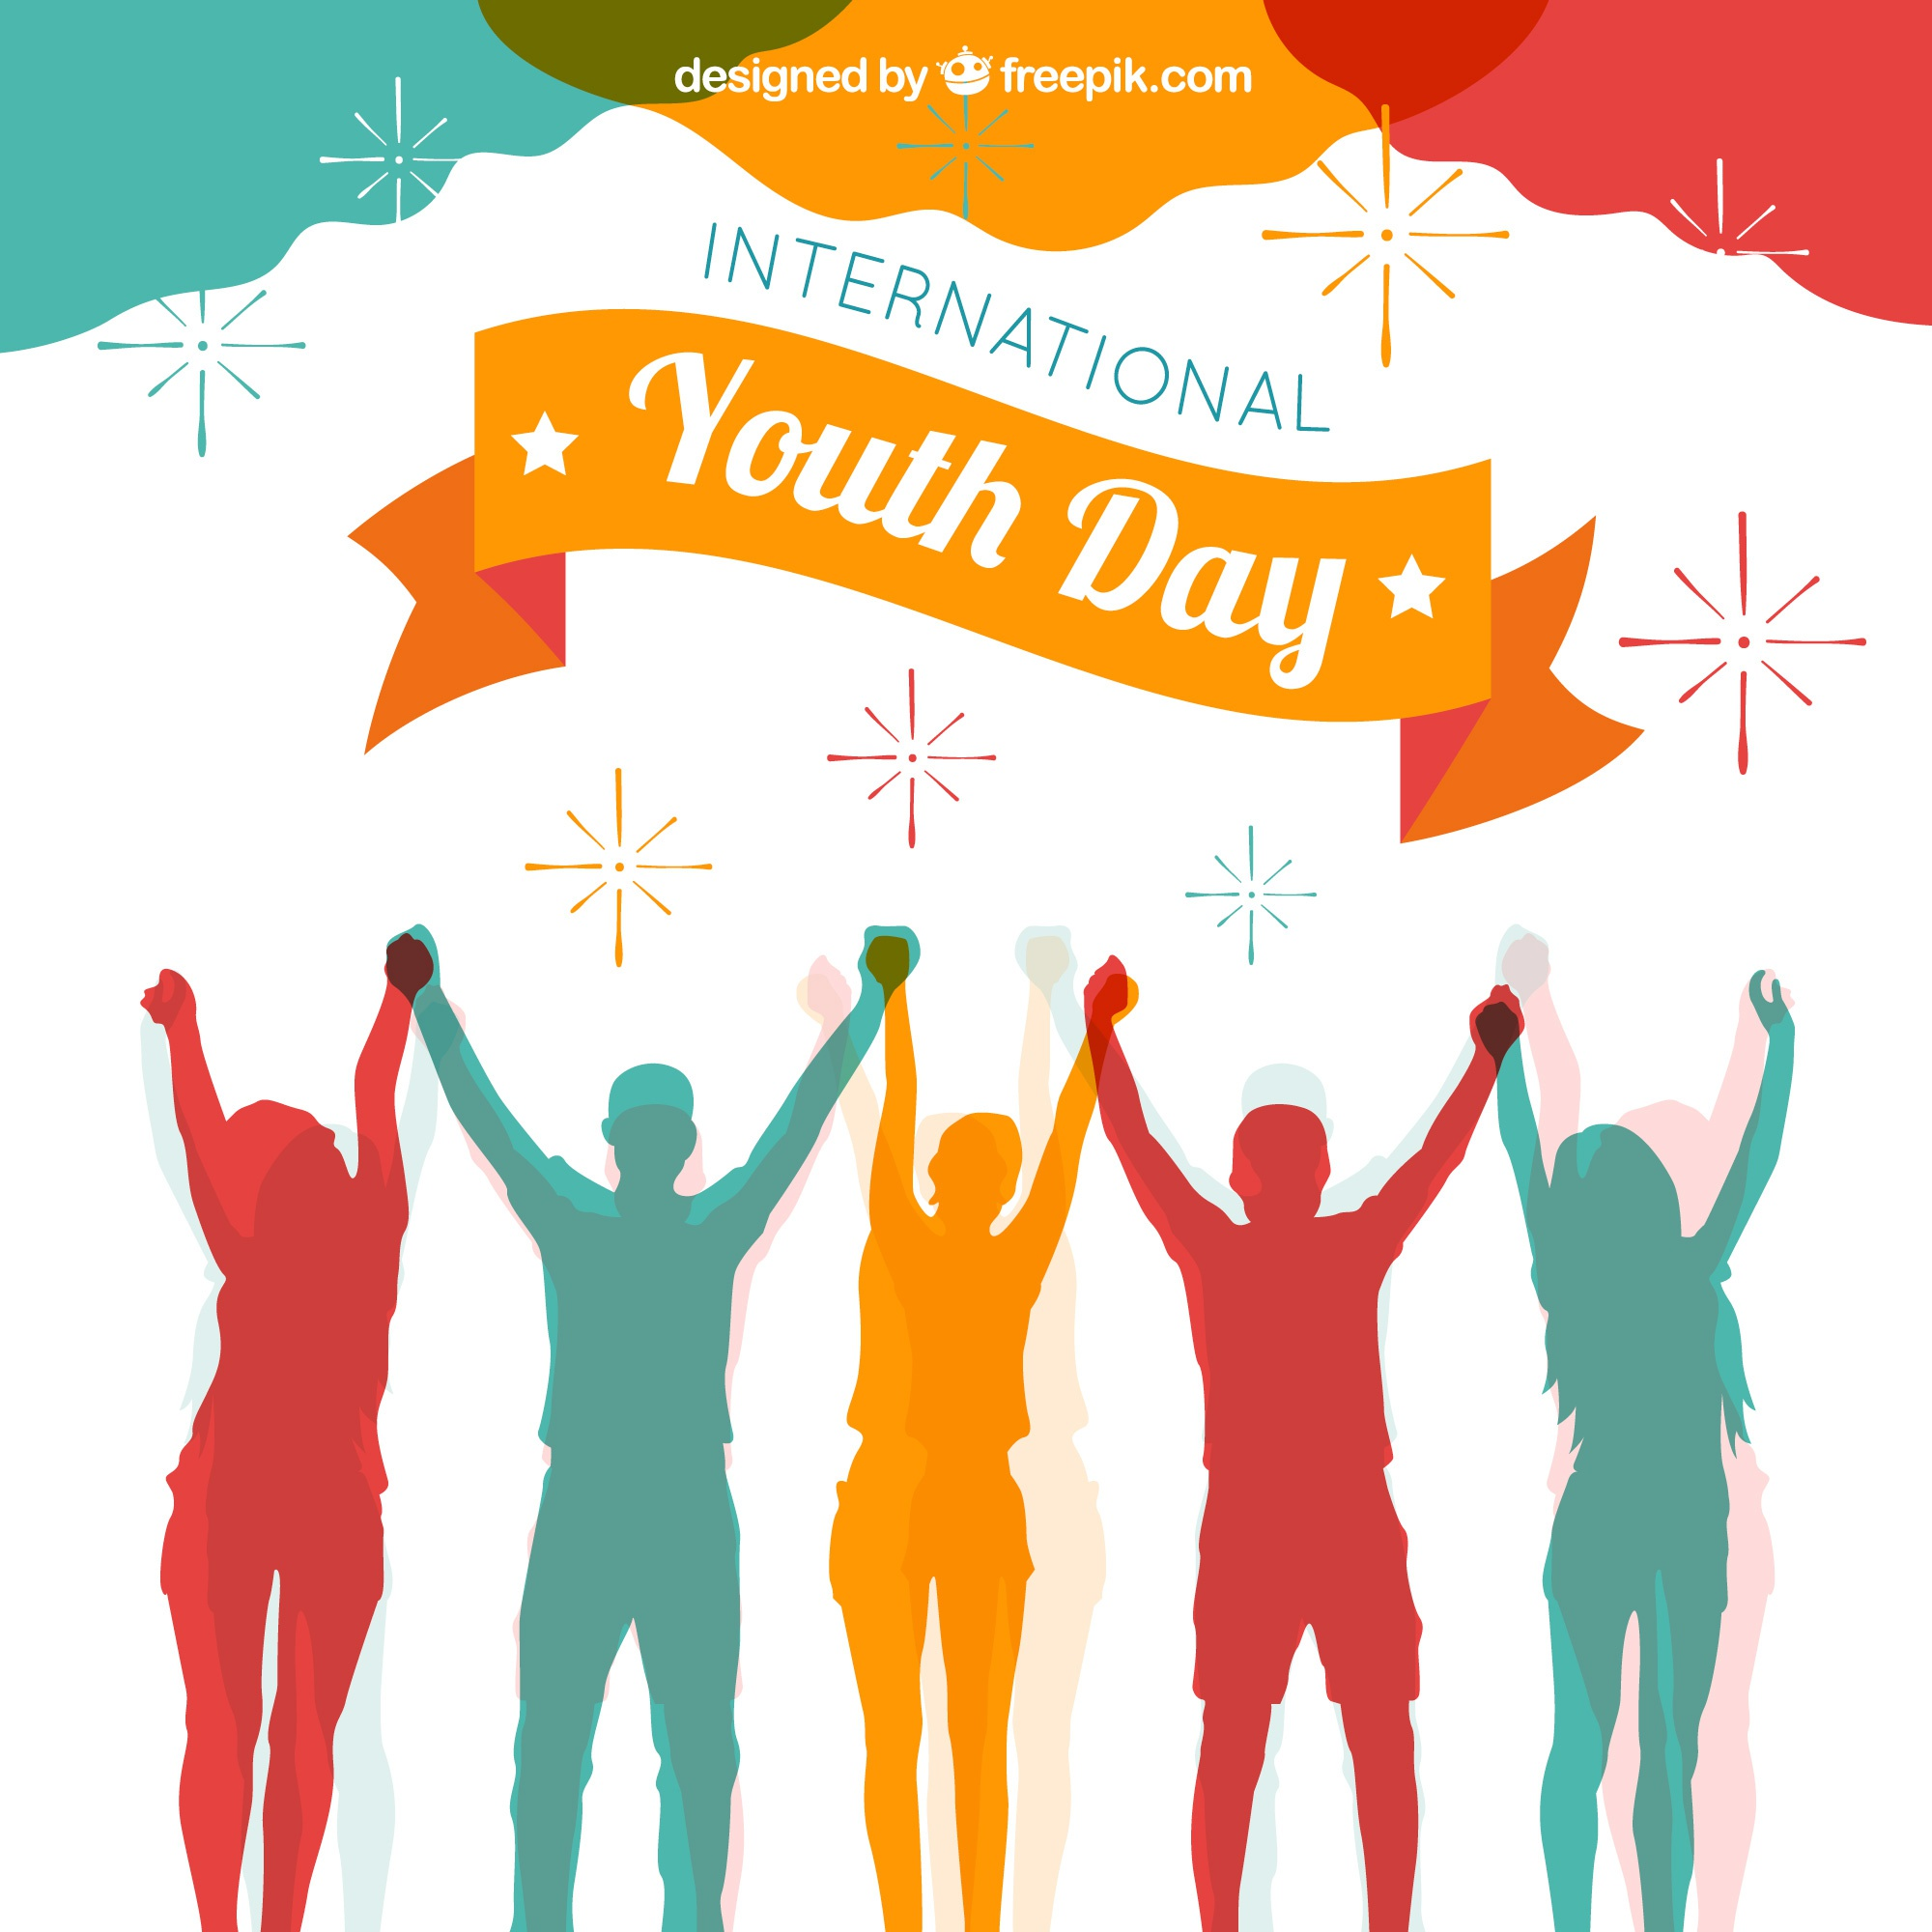 Youth day background with colorful silhouettes